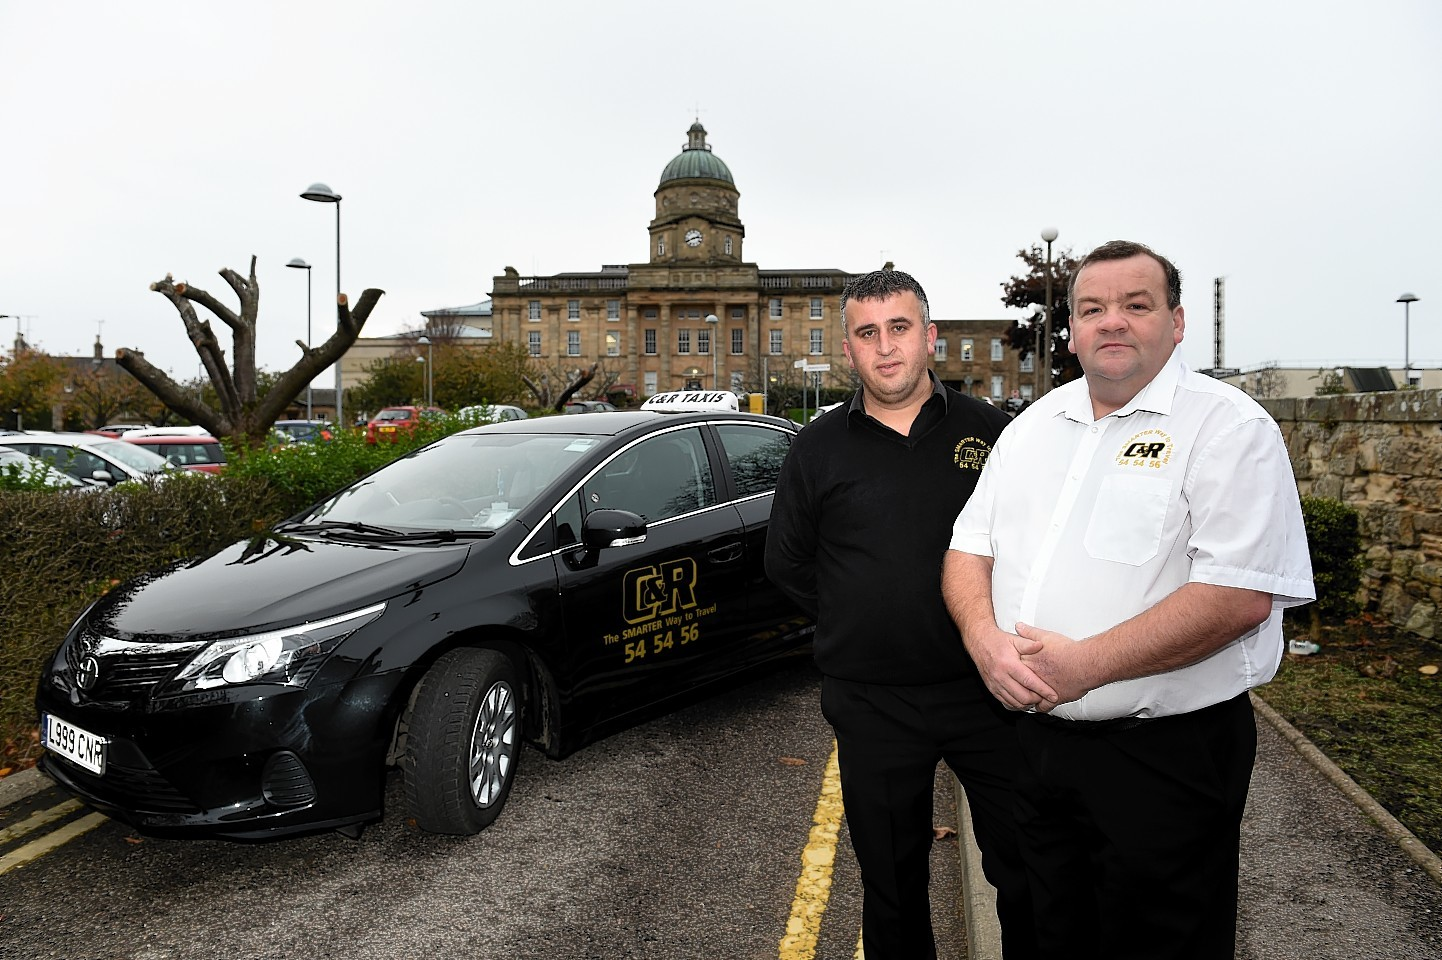 C&R Taxis boss Rod McLennan (white shirt) and driver Osman Kahraman. Picture by Kenny Elrick